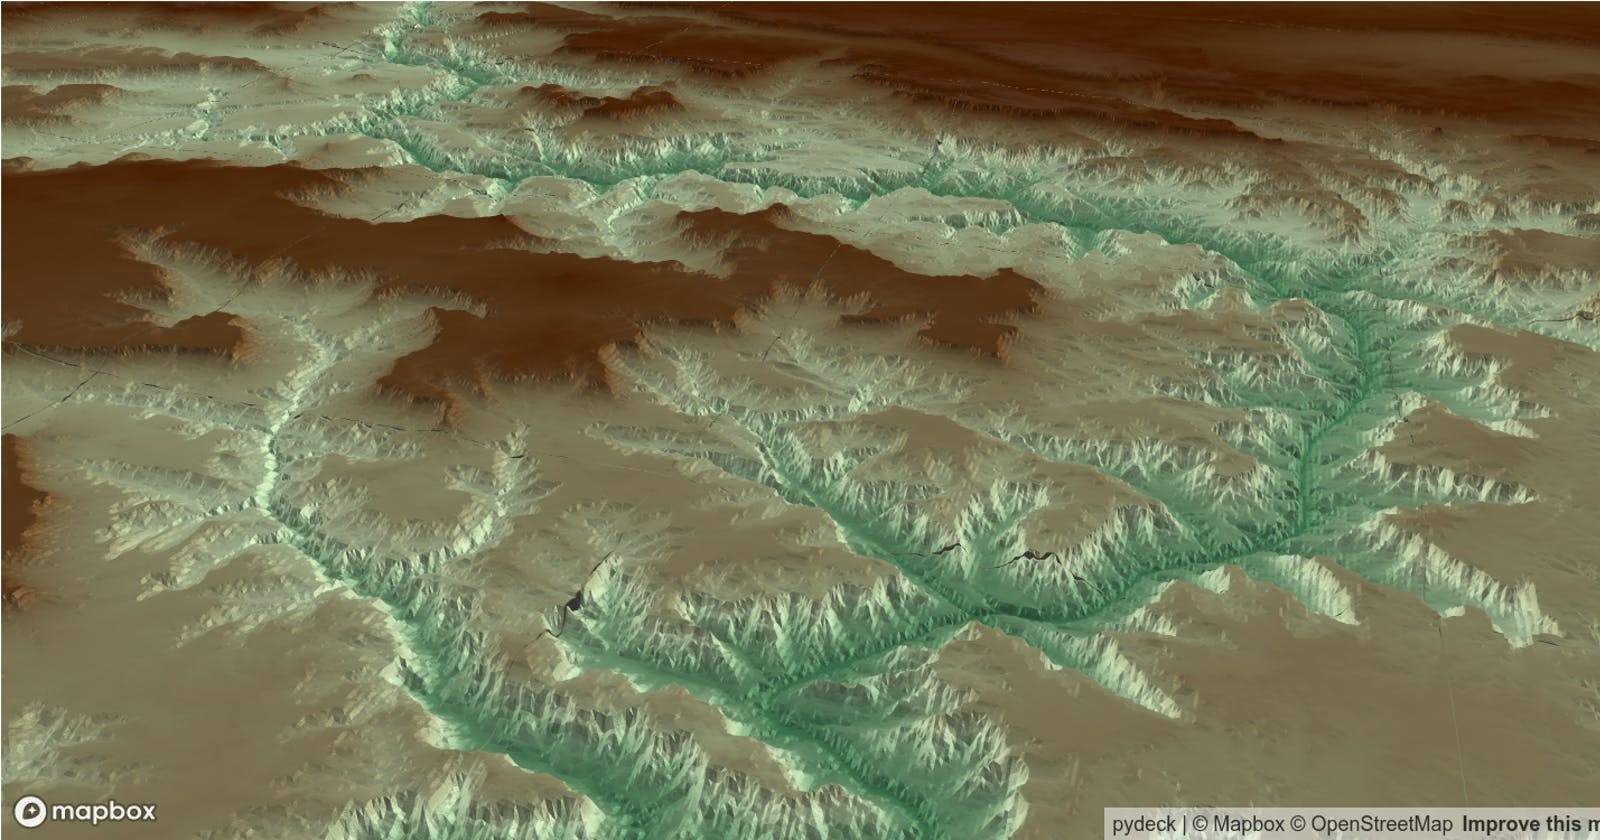 Earth Engine Tutorial #37: How to use Earth Engine with pydeck for 3D terrain visualization